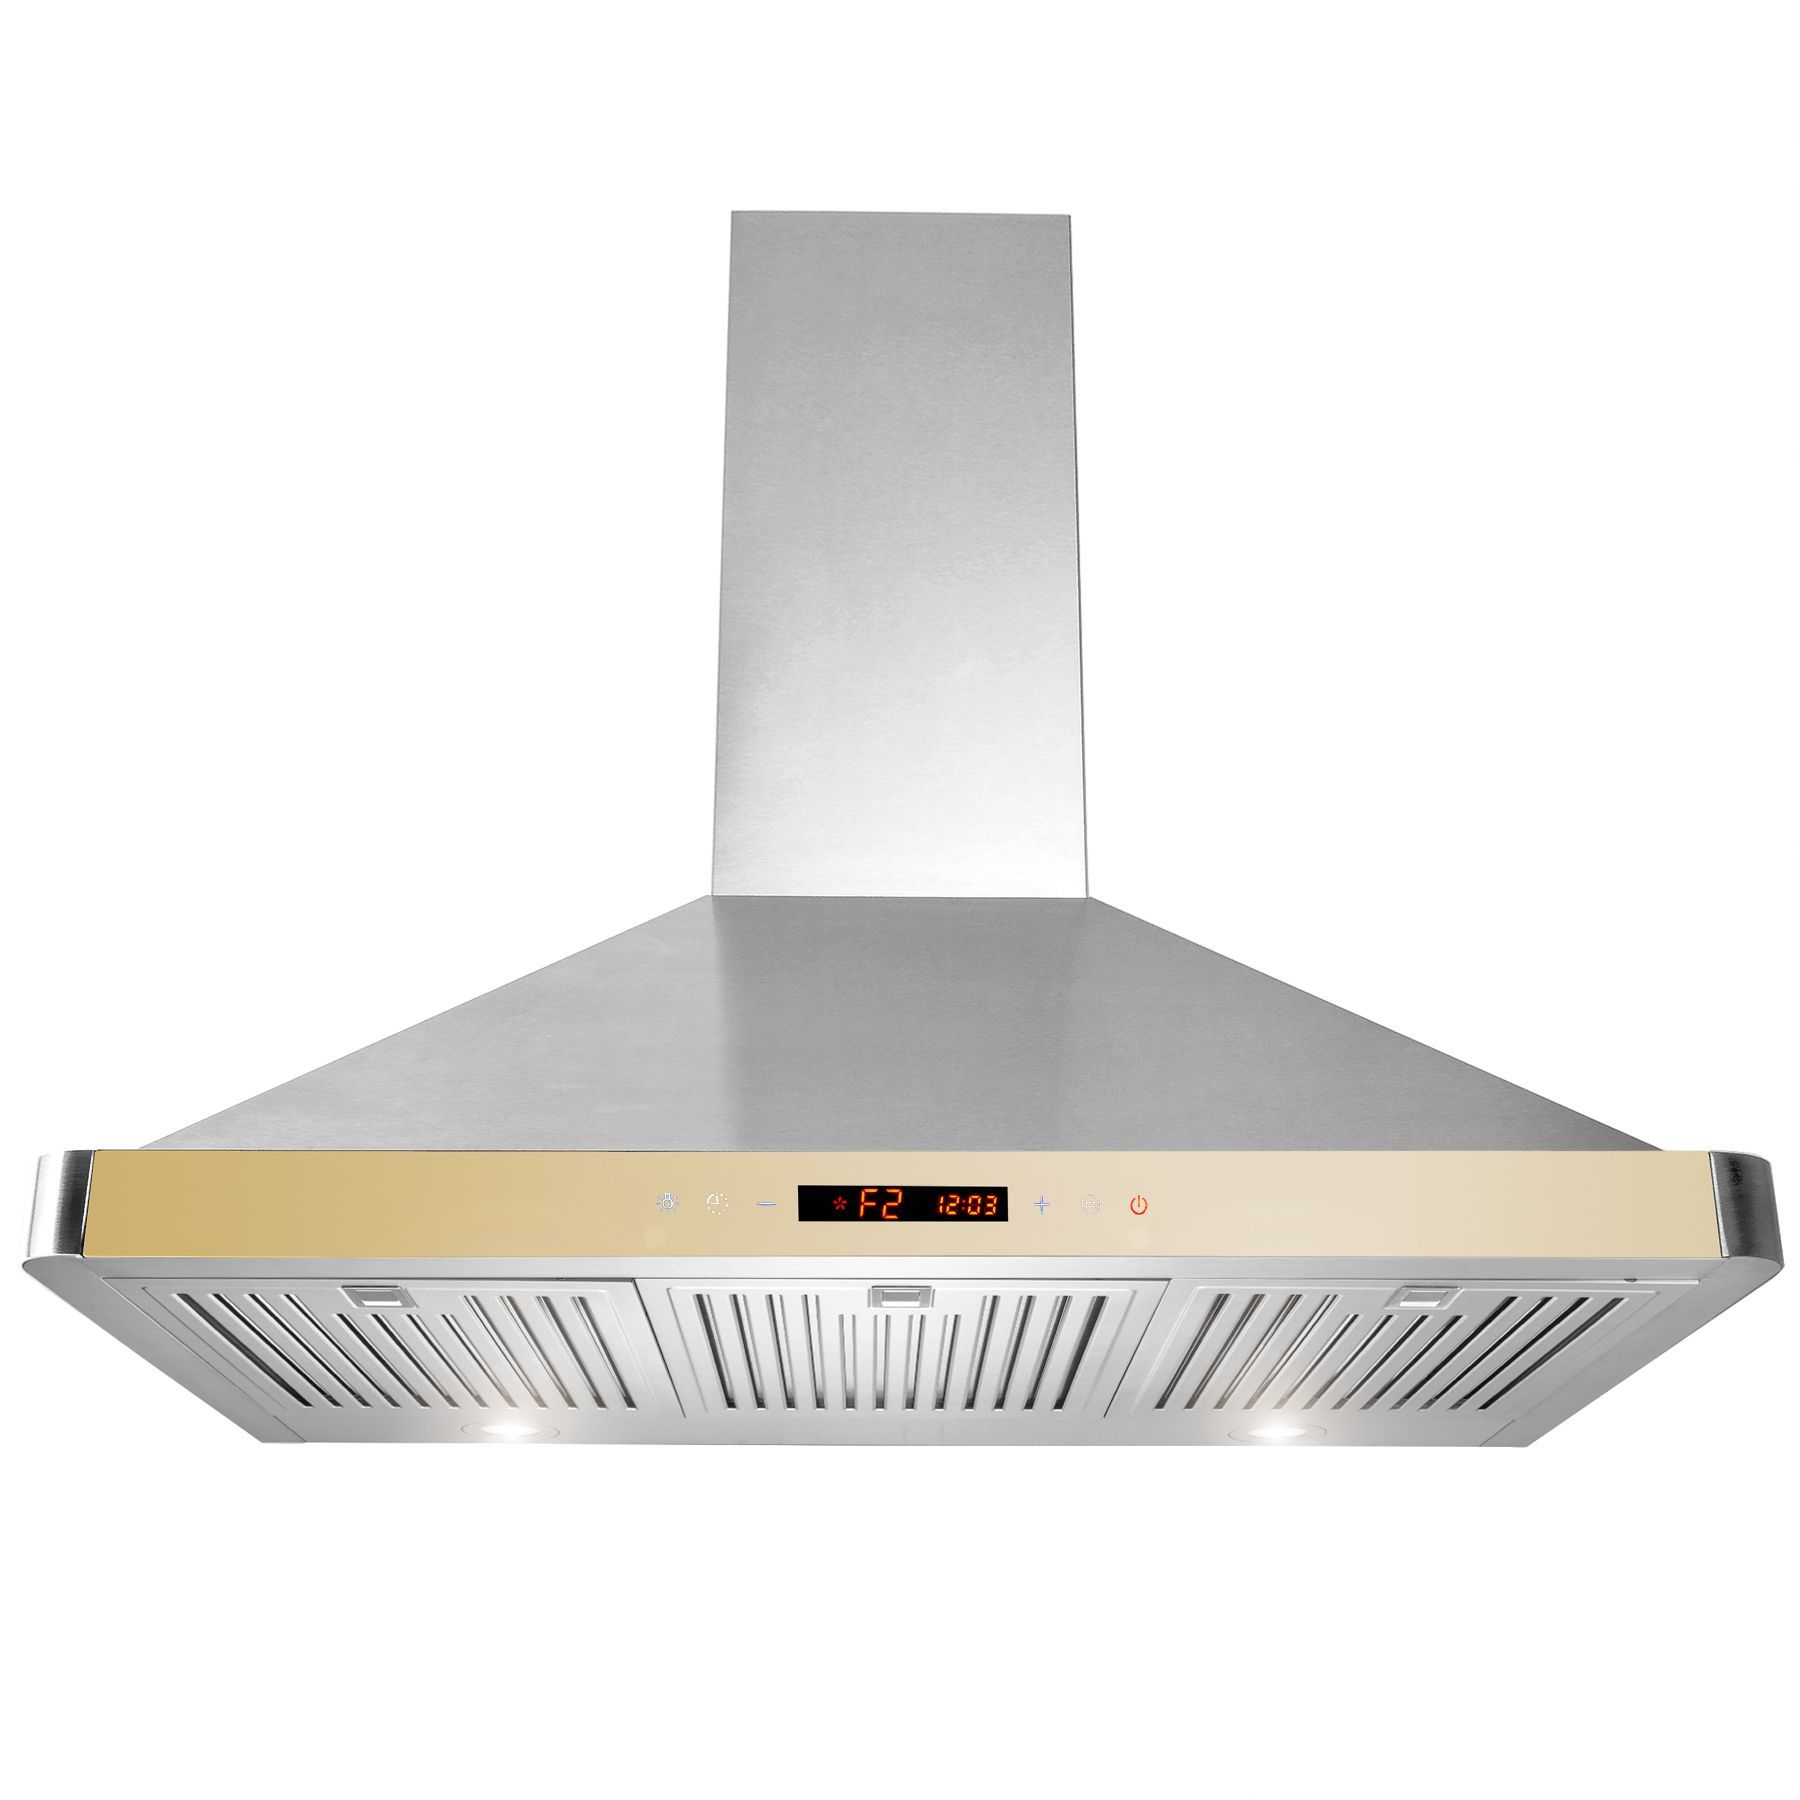 Akdy 36-inch Wall Mount Kitchen Cooking Fan Vent LED Touch Control Screen Range Hood w/ Removable Baffle Filters